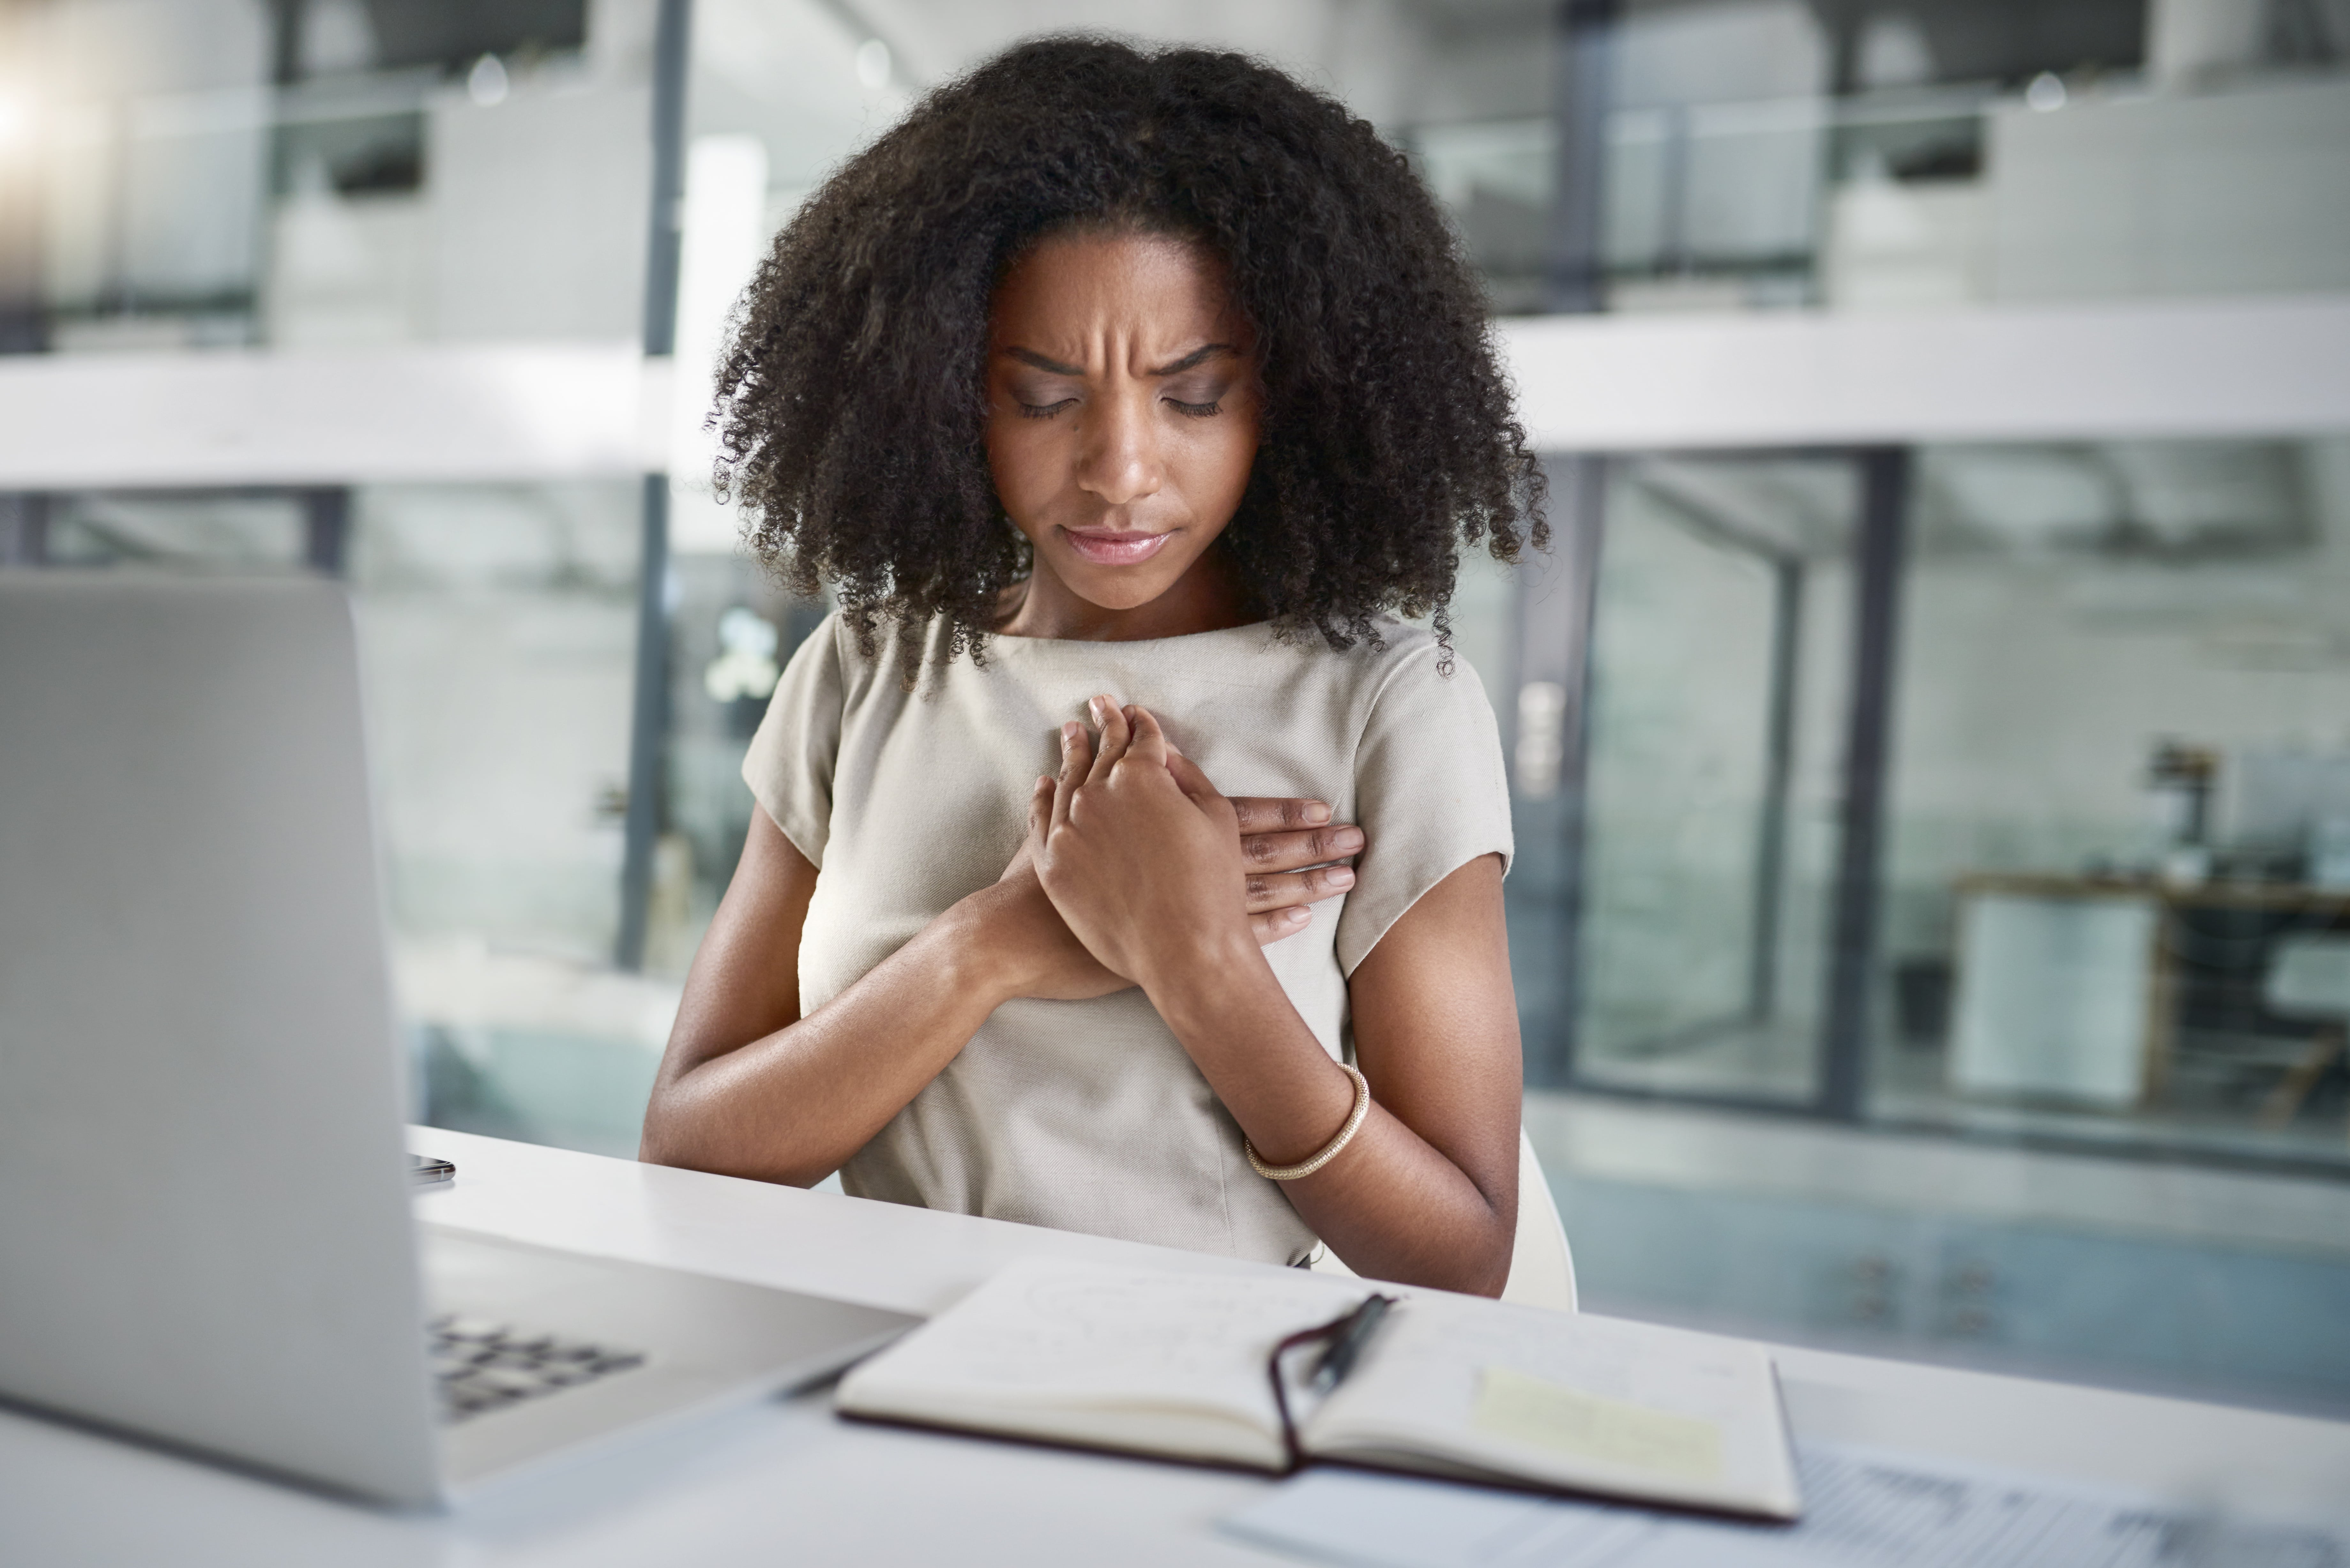 The Heart Attack Symptoms All Black Women Should Know and Never Ignore